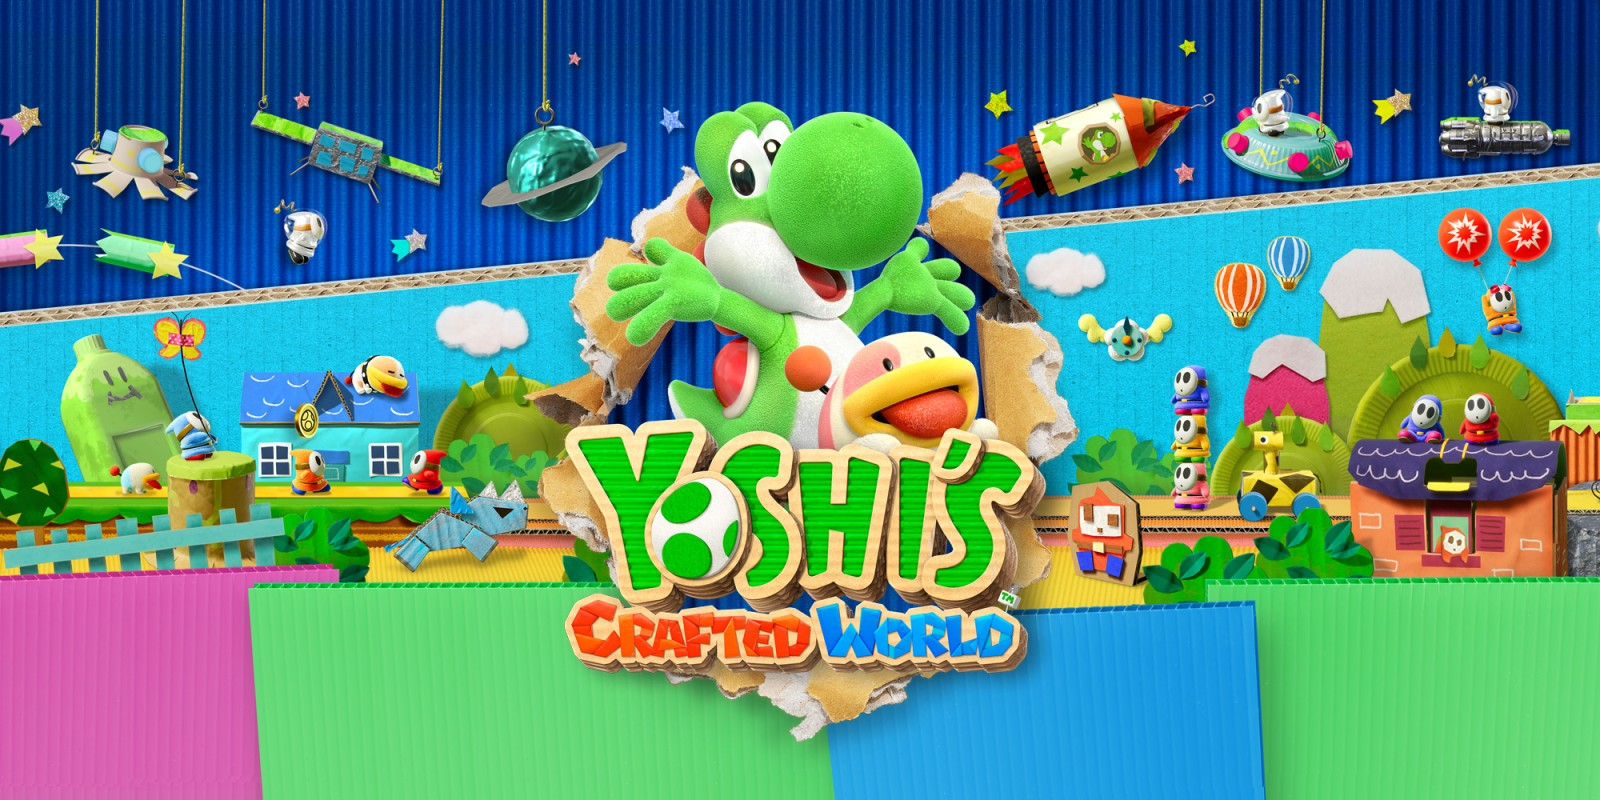 Yoshi S Crafted World Nintendo Switch Juegos Nintendo